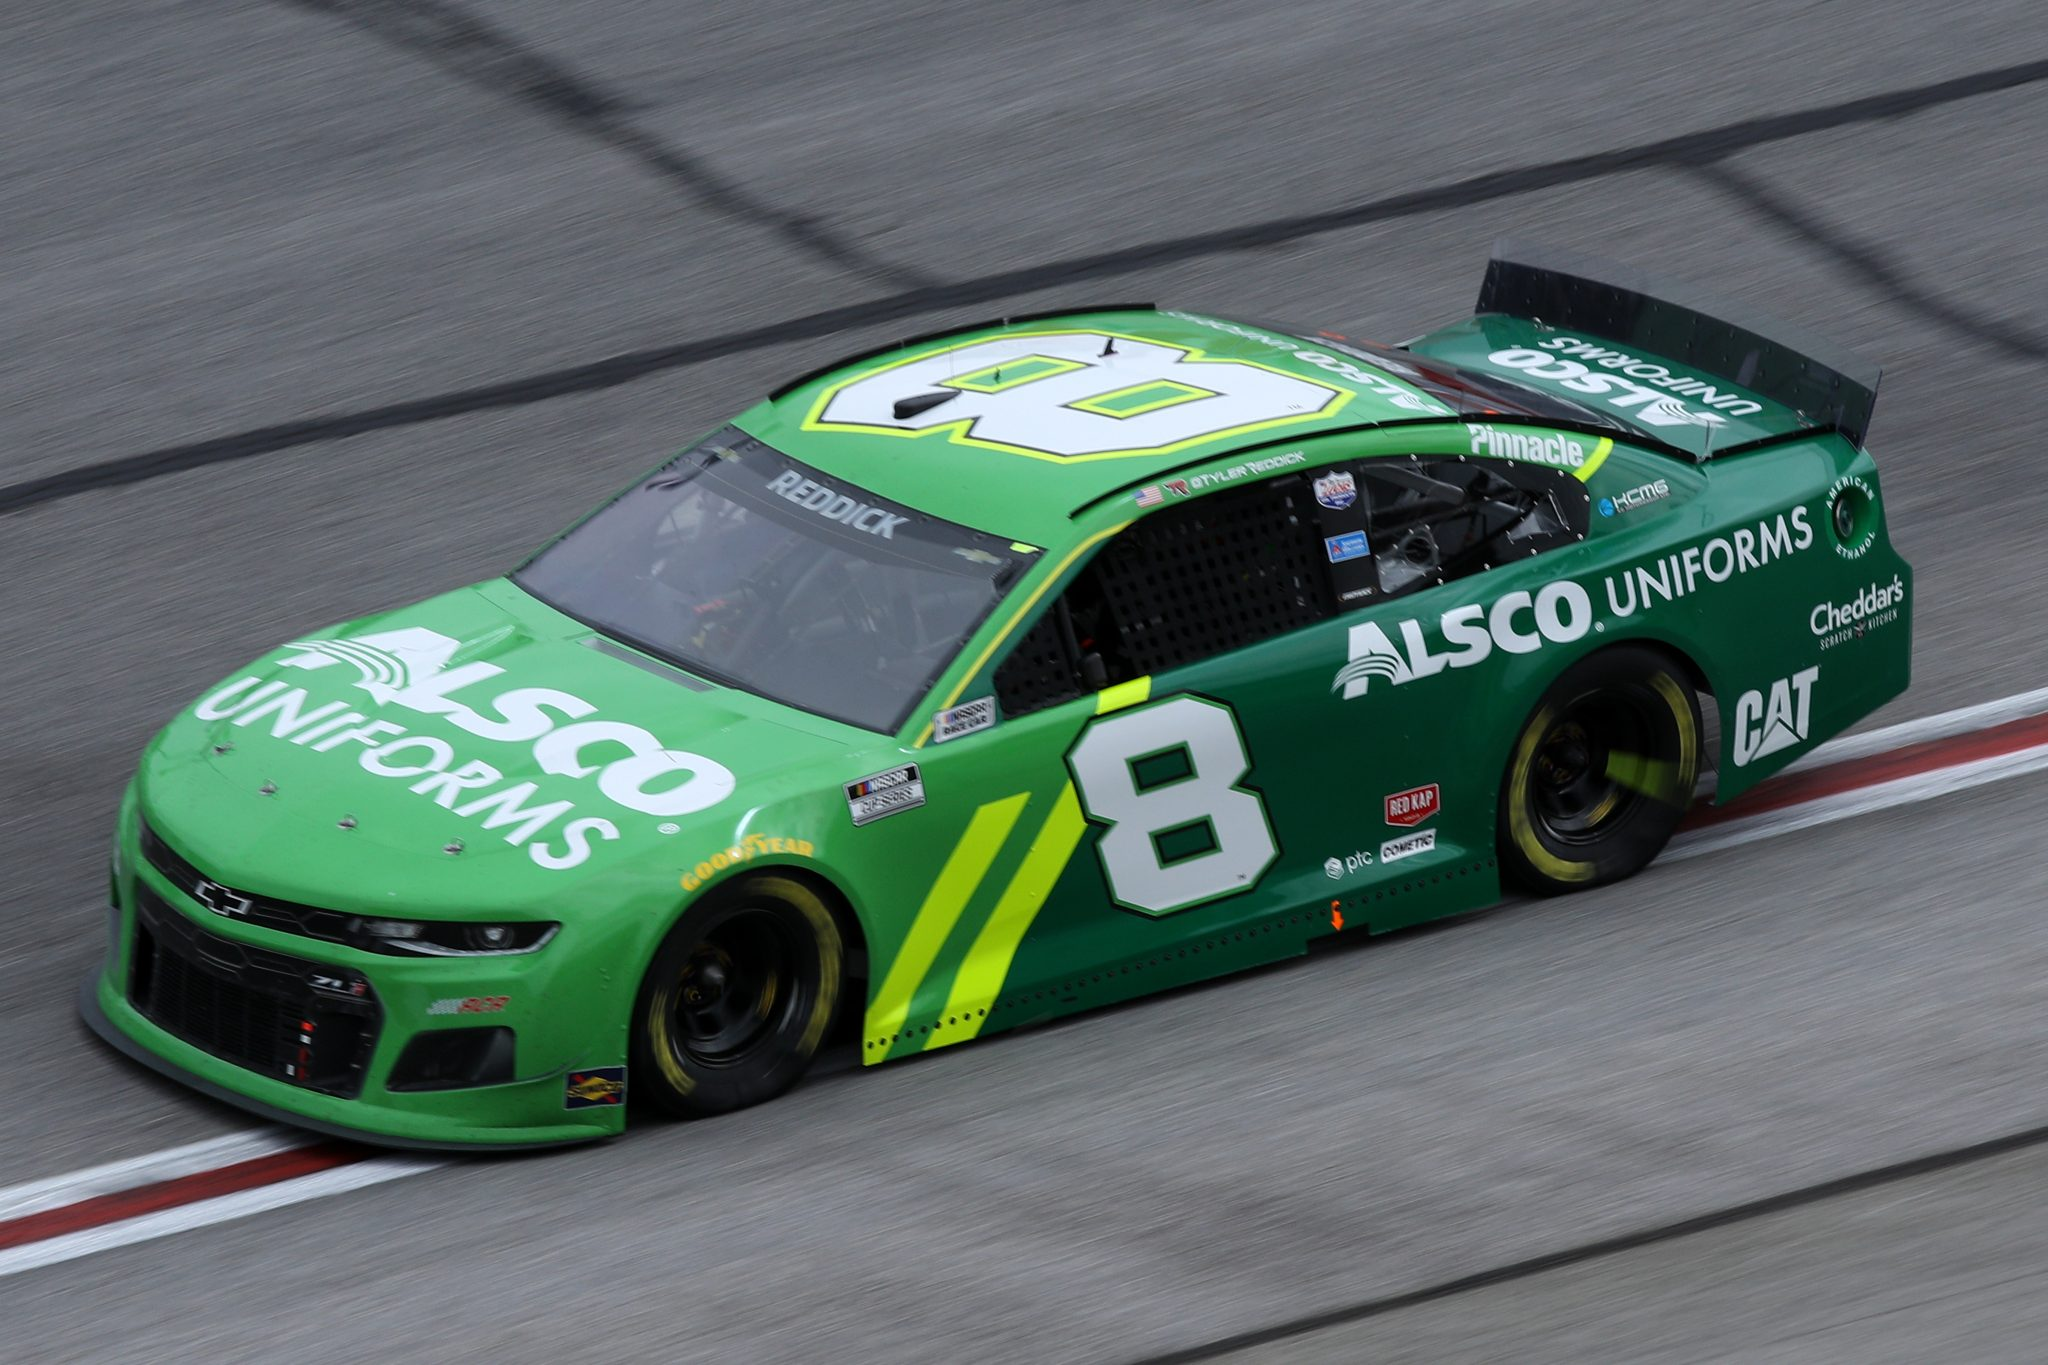 HAMPTON, GEORGIA - MARCH 21: Tyler Reddick, driver of the #8 Alsco Uniforms Chevrolet, drives during the NASCAR Cup Series Folds of Honor QuikTrip 500 at Atlanta Motor Speedway on March 21, 2021 in Hampton, Georgia. (Photo by Sean Gardner/Getty Images) | Getty Images